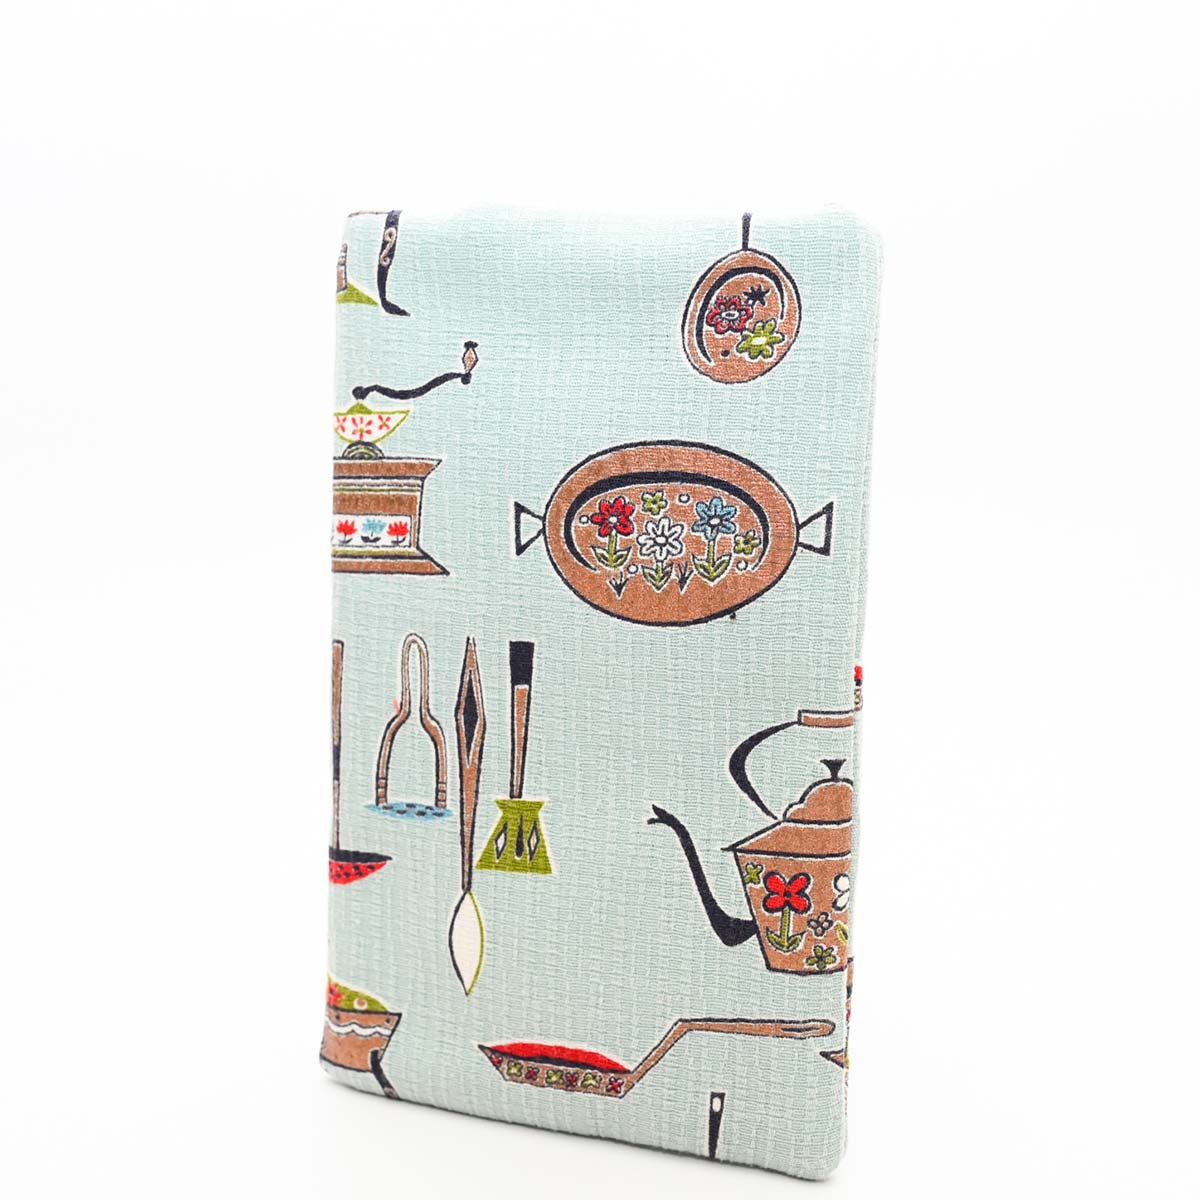 cellphone bag 1950s kitchen motif